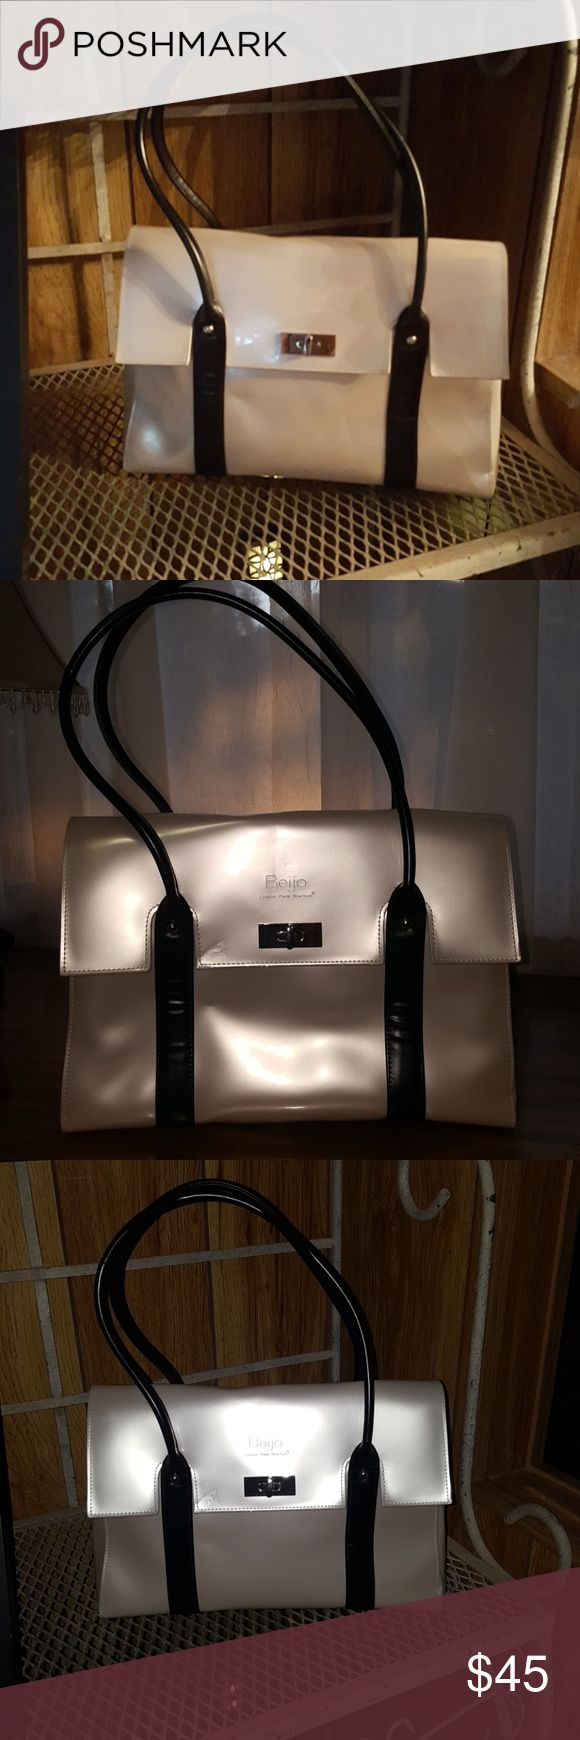 Beijo Purse Pearlescent & Black Purse exude the Luxe Look. Clean  inside & out. Minor impression if front flap. Otherwise Excellent Like New Condition. Roomy inside w/3 sections. Middle has 2 pouches & zippered pocket w/Beijo black label. 🥂Holiday Party ready.🍾🍸🍷 Beijo Bags